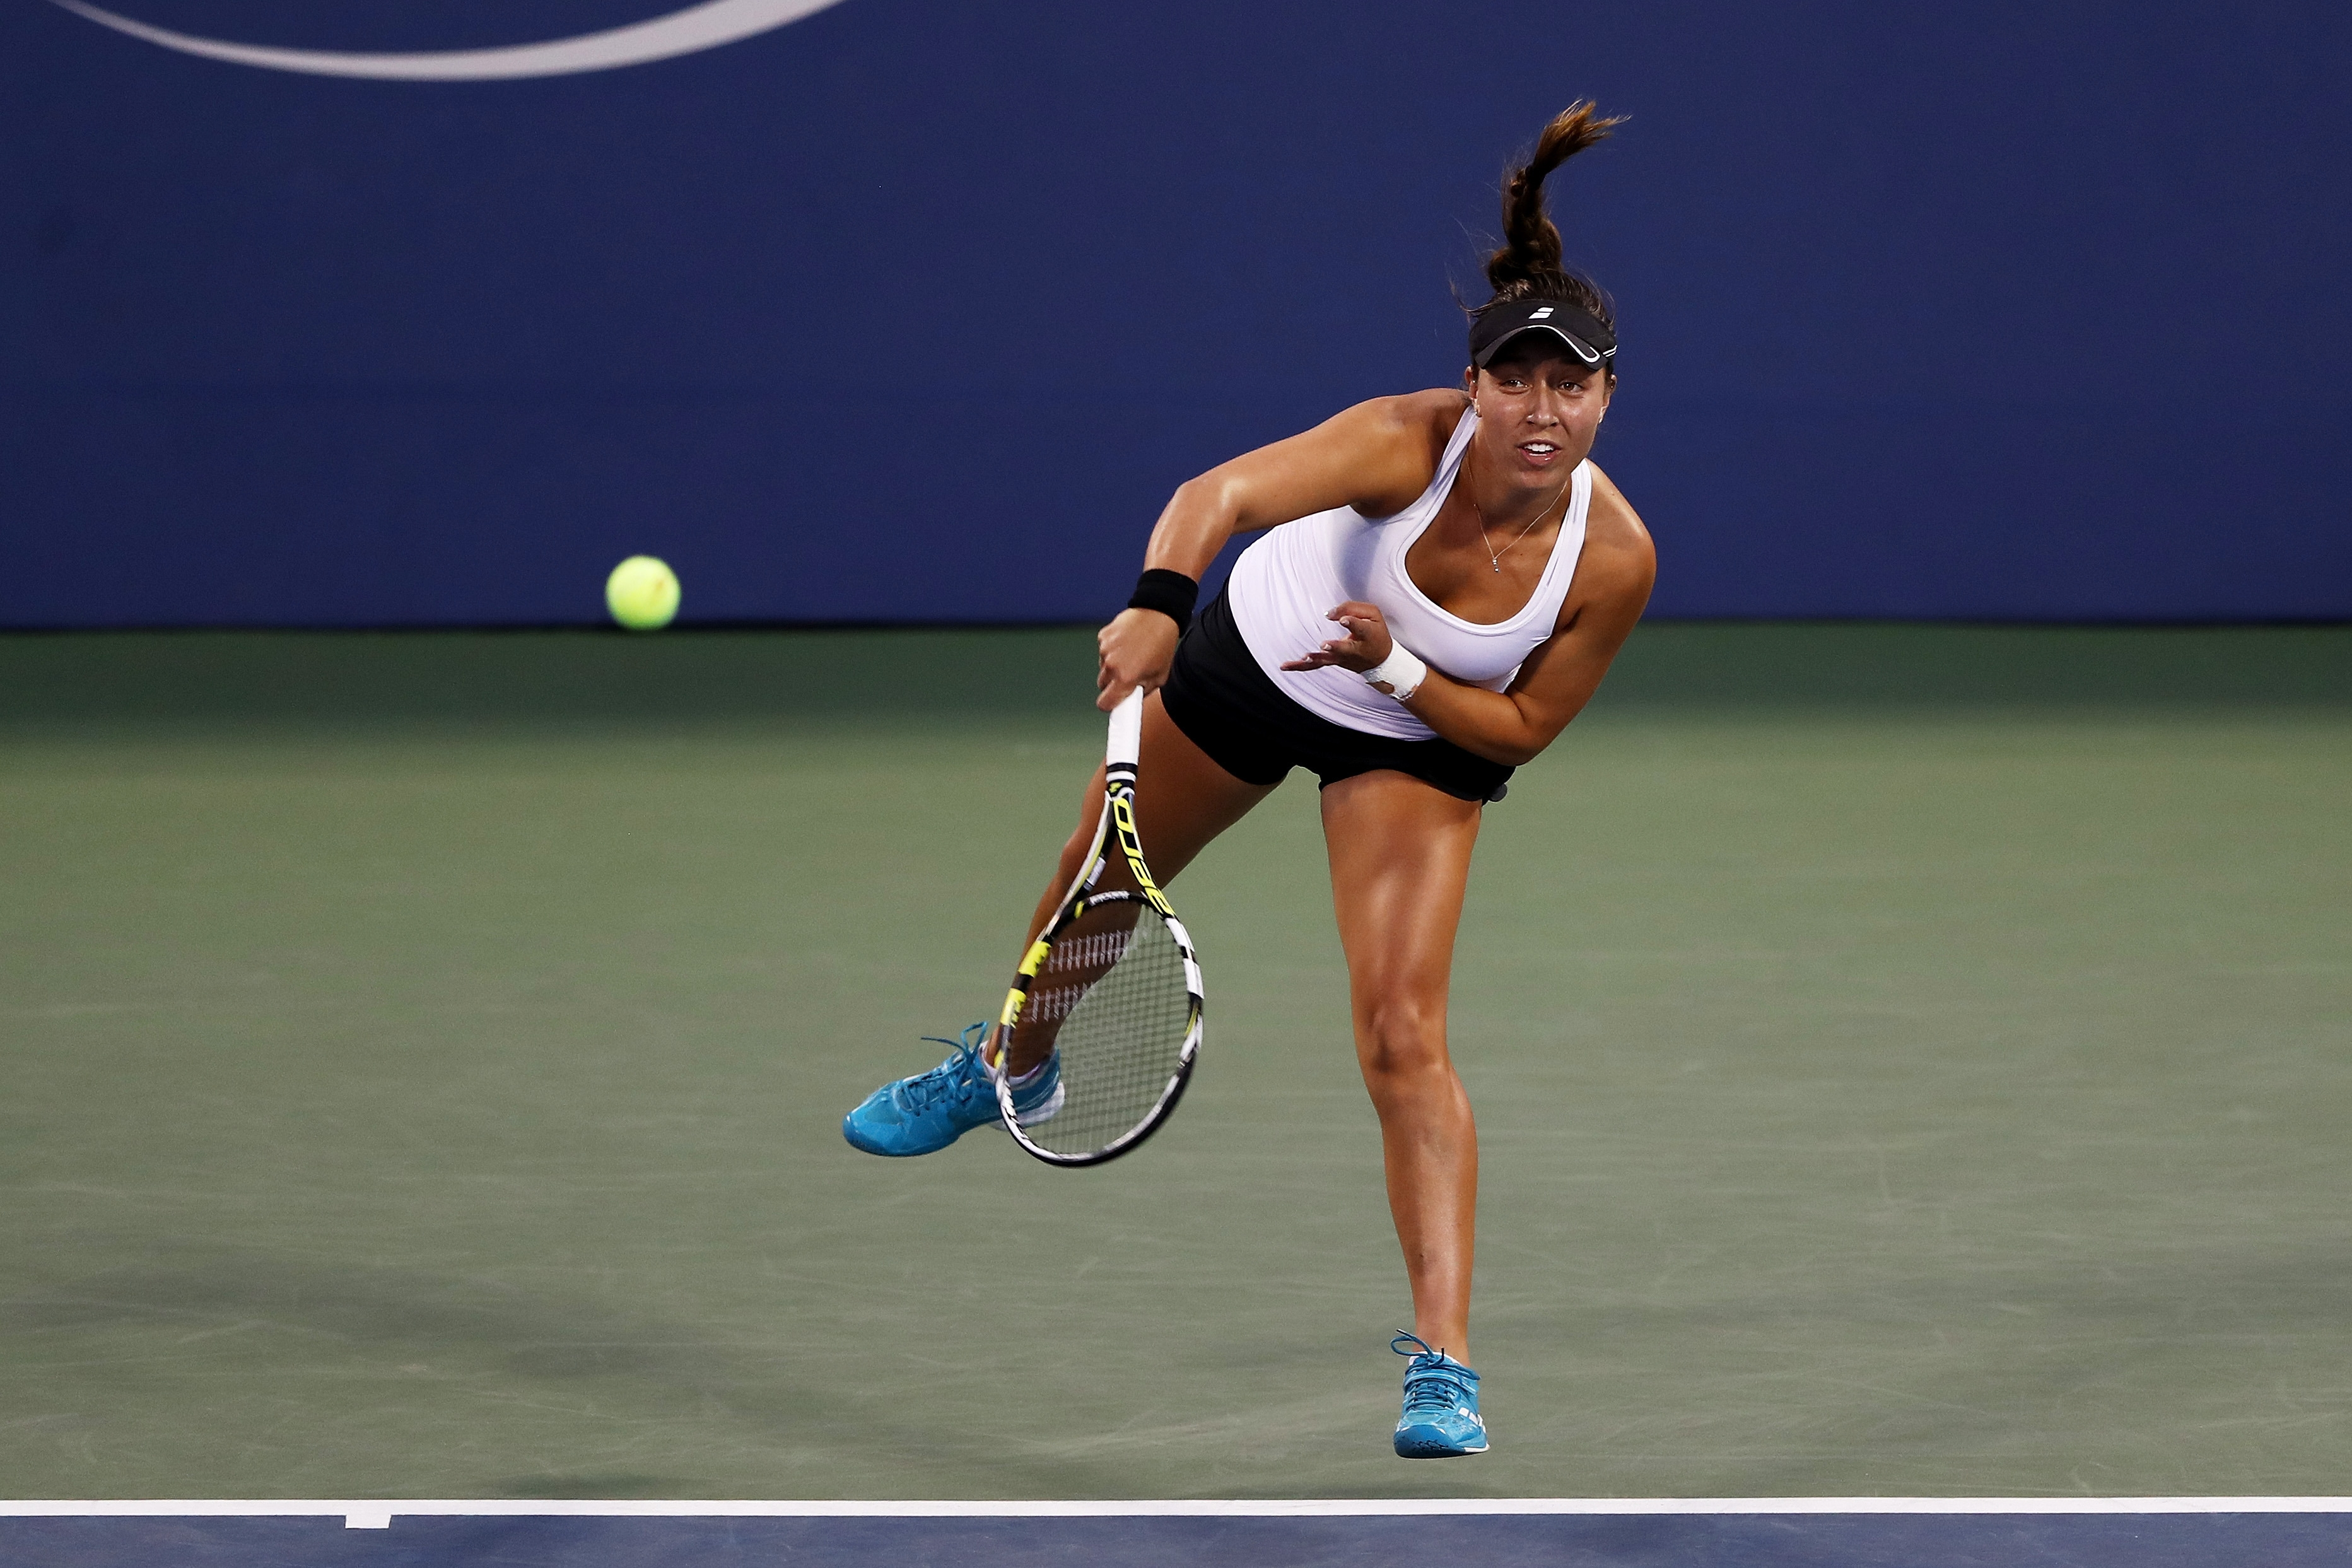 Jessica Pegula serves to Agnieszka Radwanska of Poland during her first round women's singles match Tuesday in the U.S. Open.